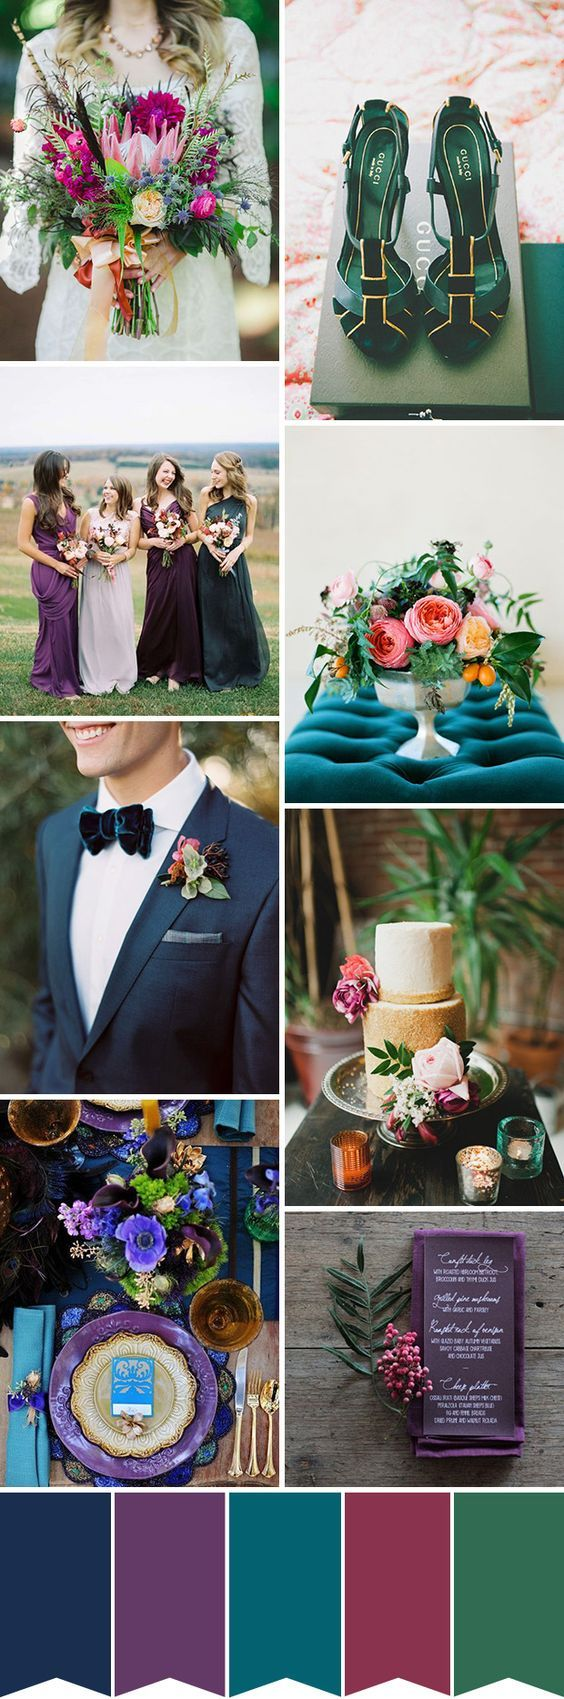 Hello kitty wedding decorations january 2019  best Winter Wedding images on Pinterest  Winter weddings